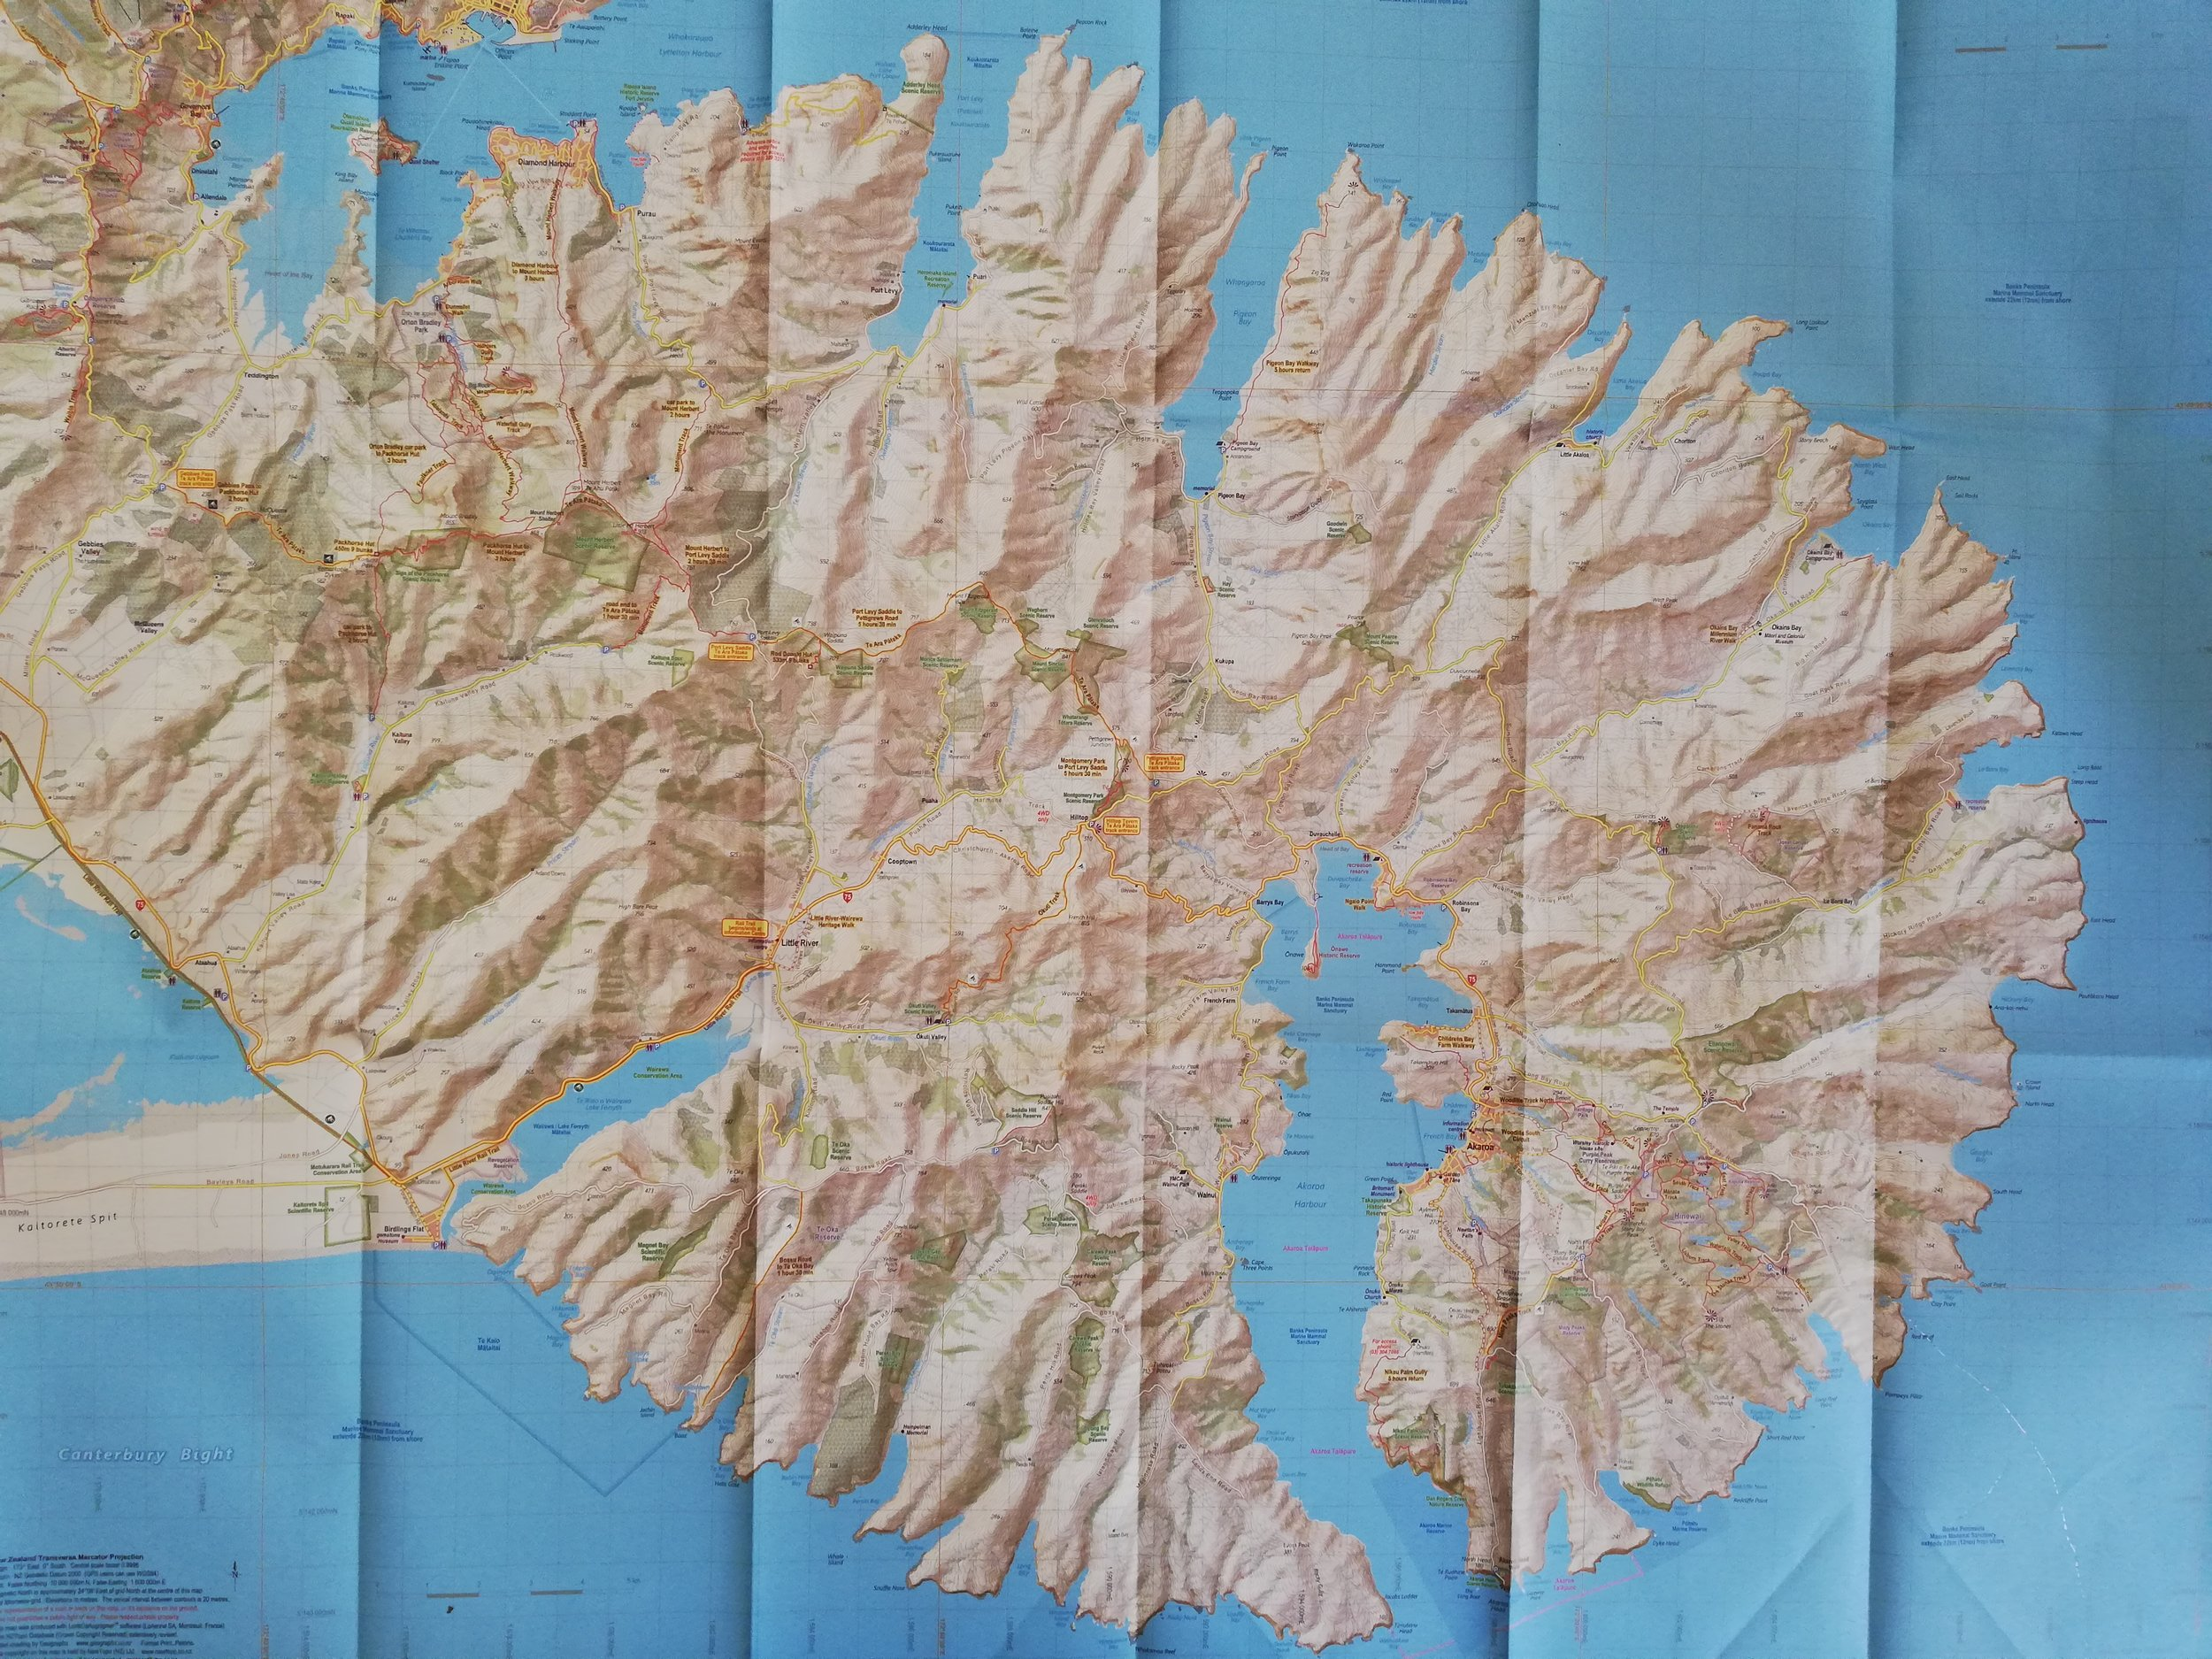 Map of Banks Peninsula.